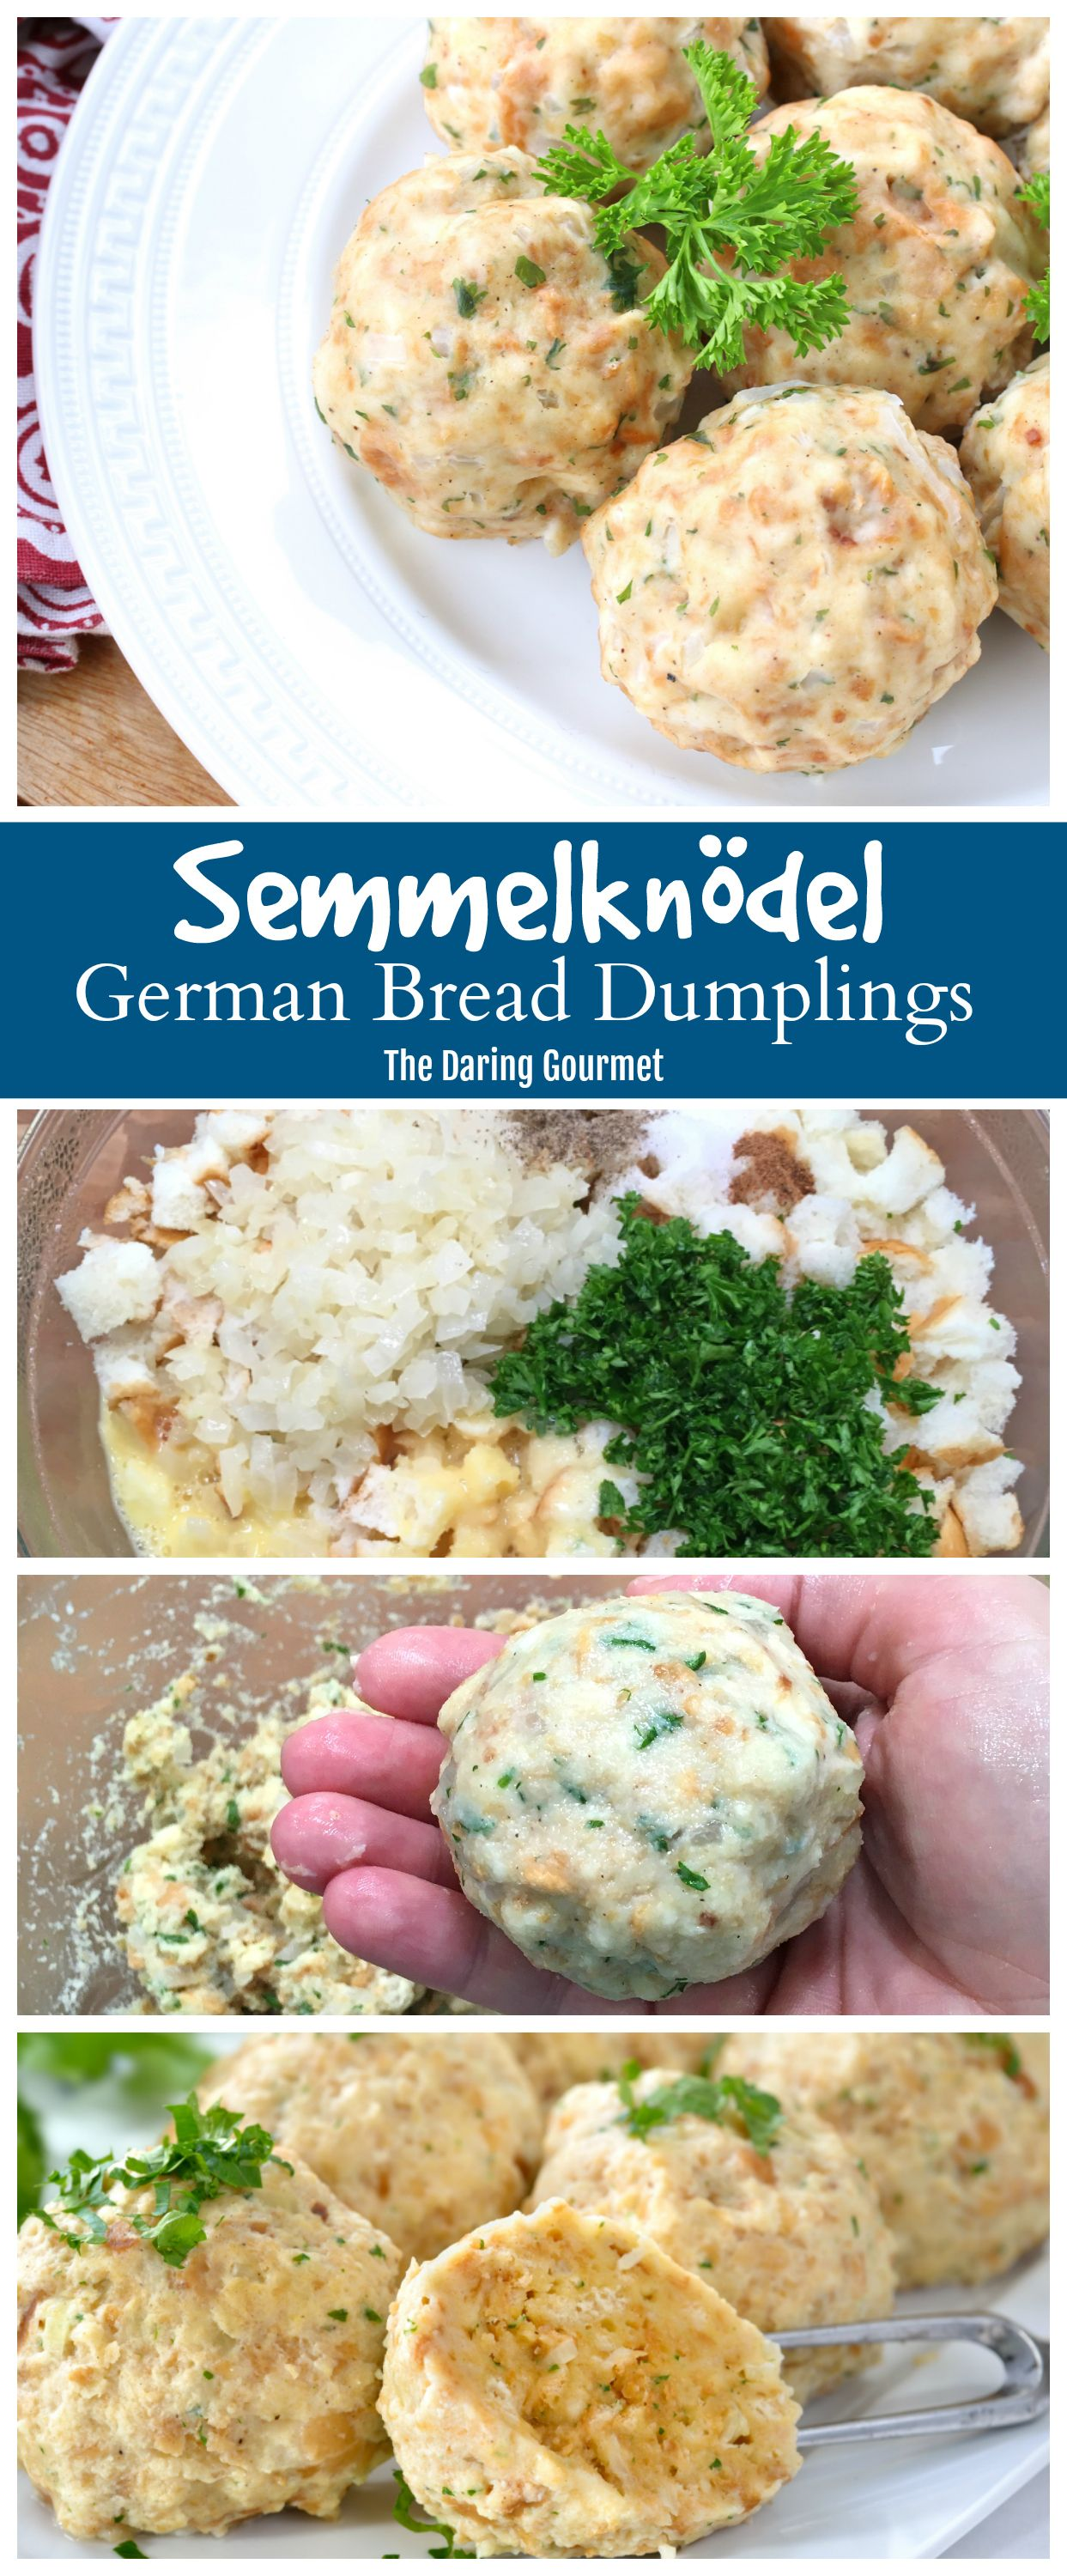 Semmelknödel (German Bread Dumplings)